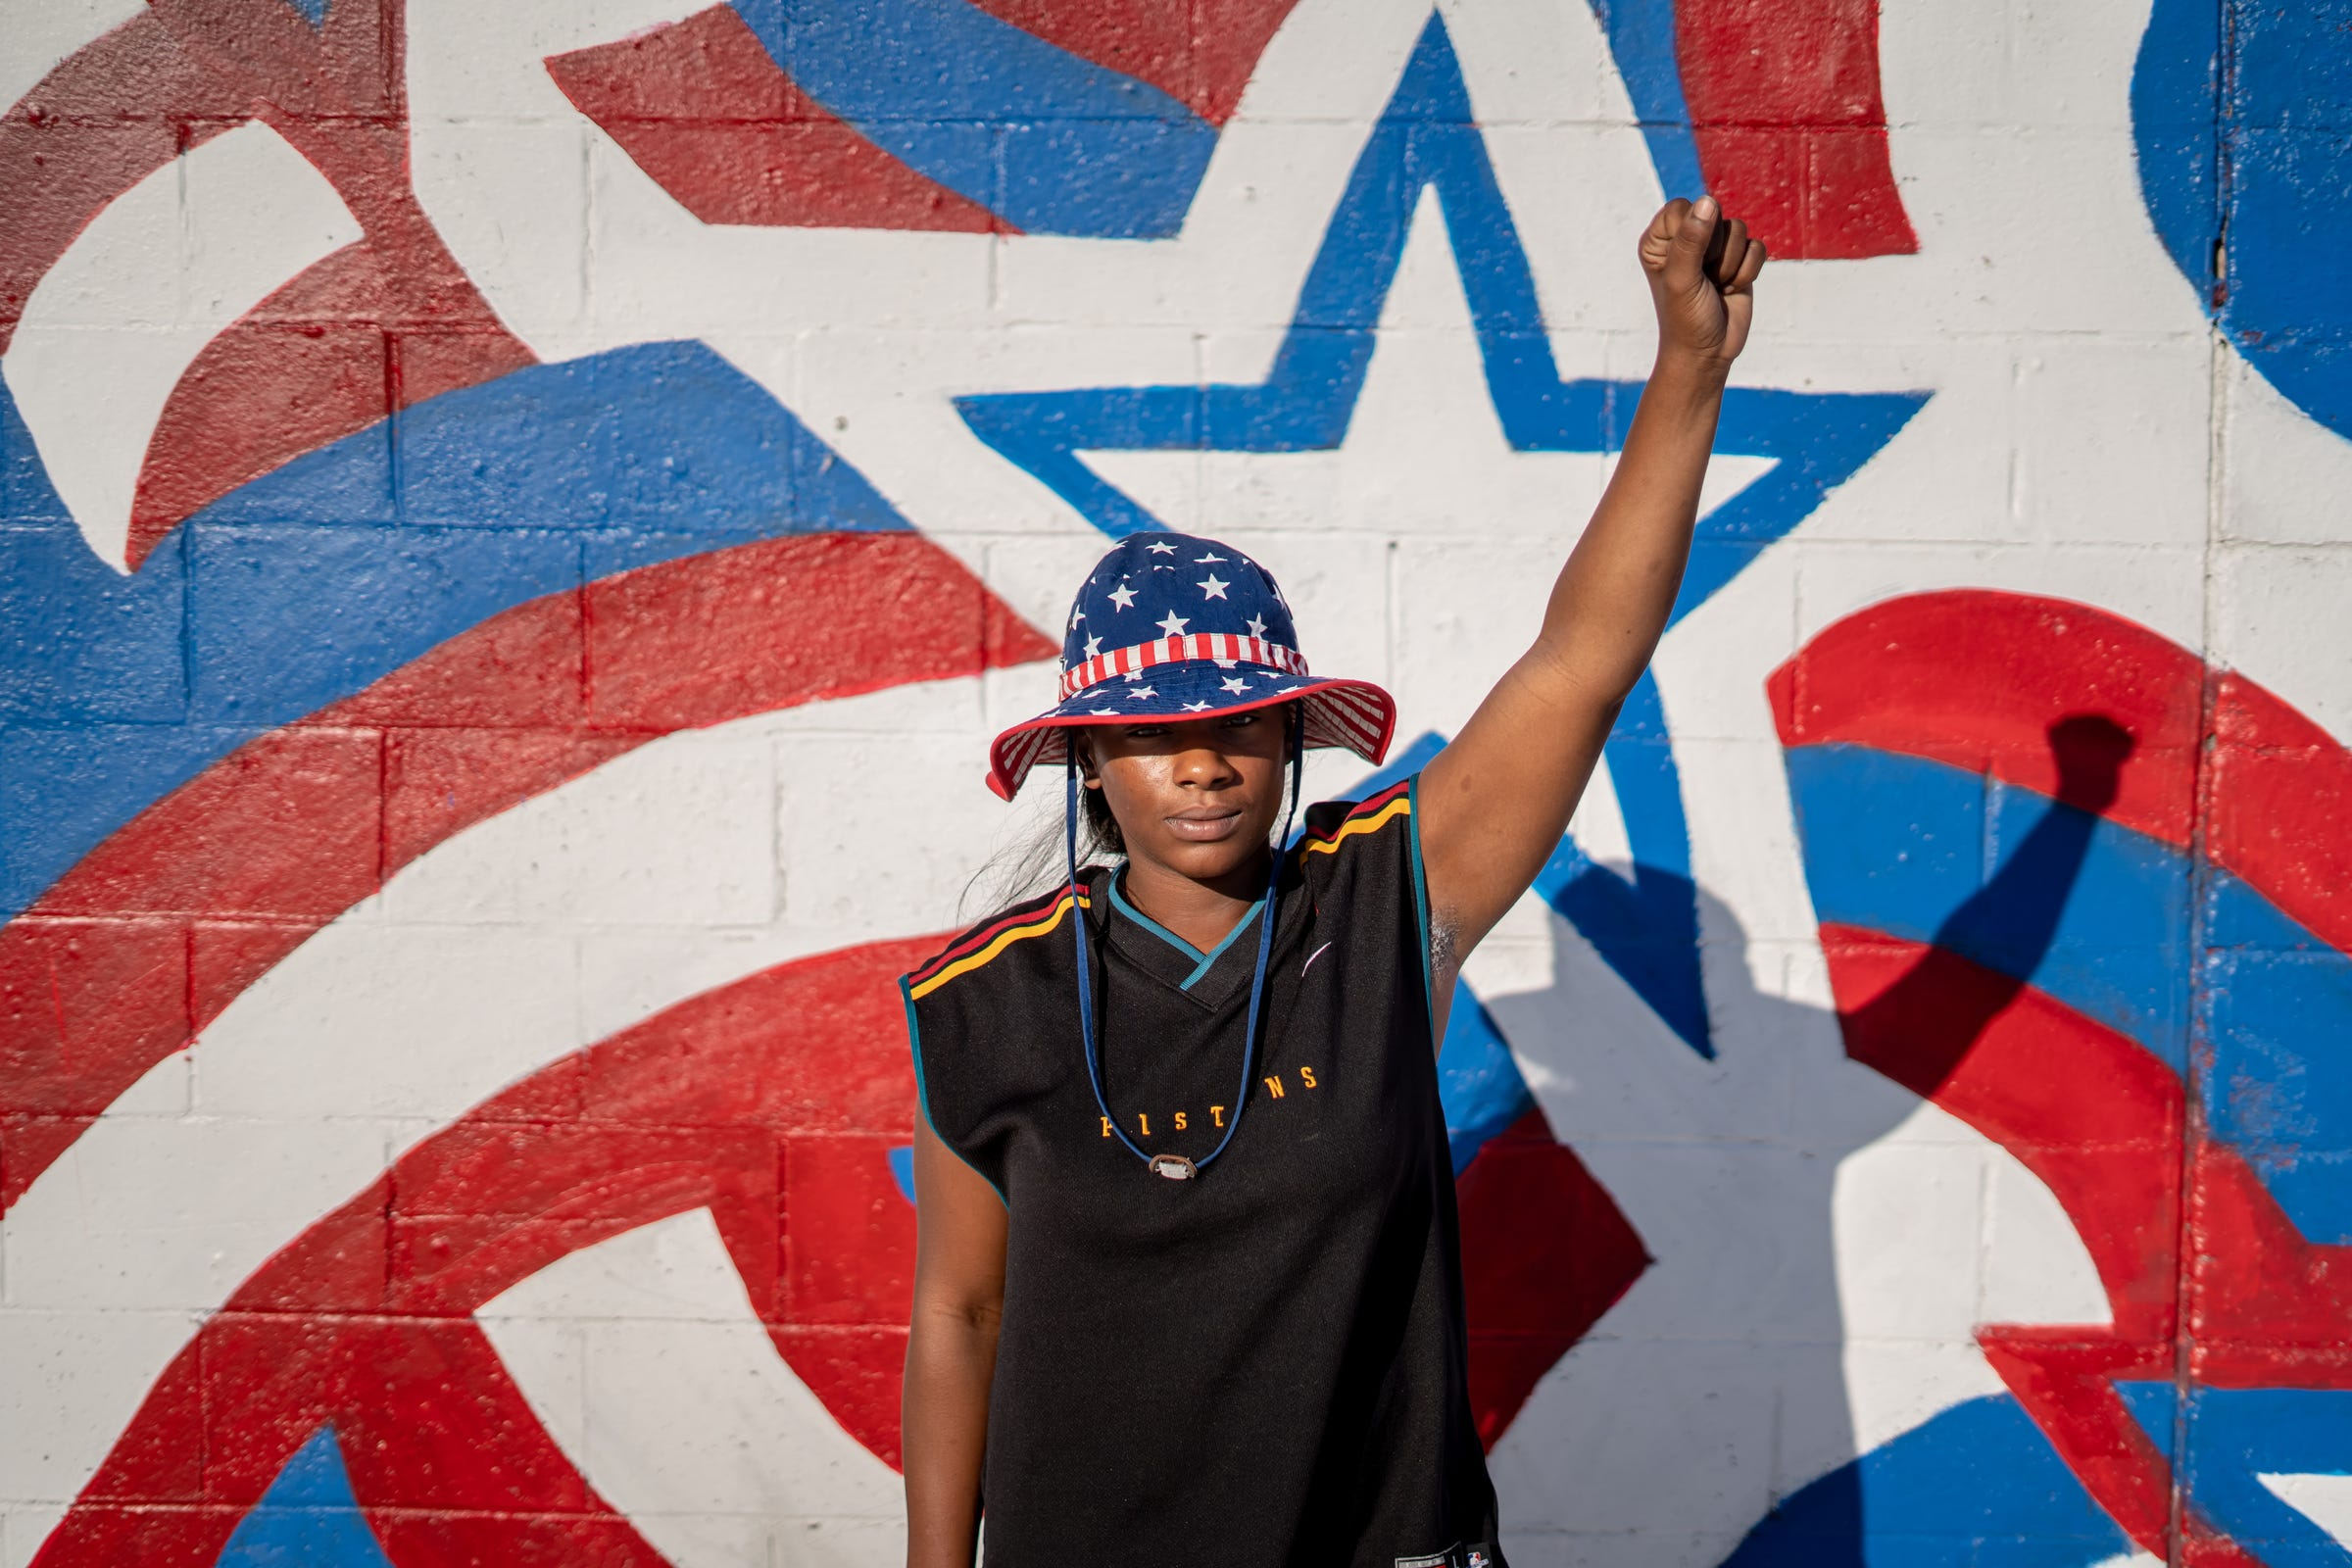 Shaqualla Johnson of Detroit poses for a photo at Veterans Park in Hamtramck on Thursday, August 20, 2020 before the start of a march through the streets for Justice for Yemen march.